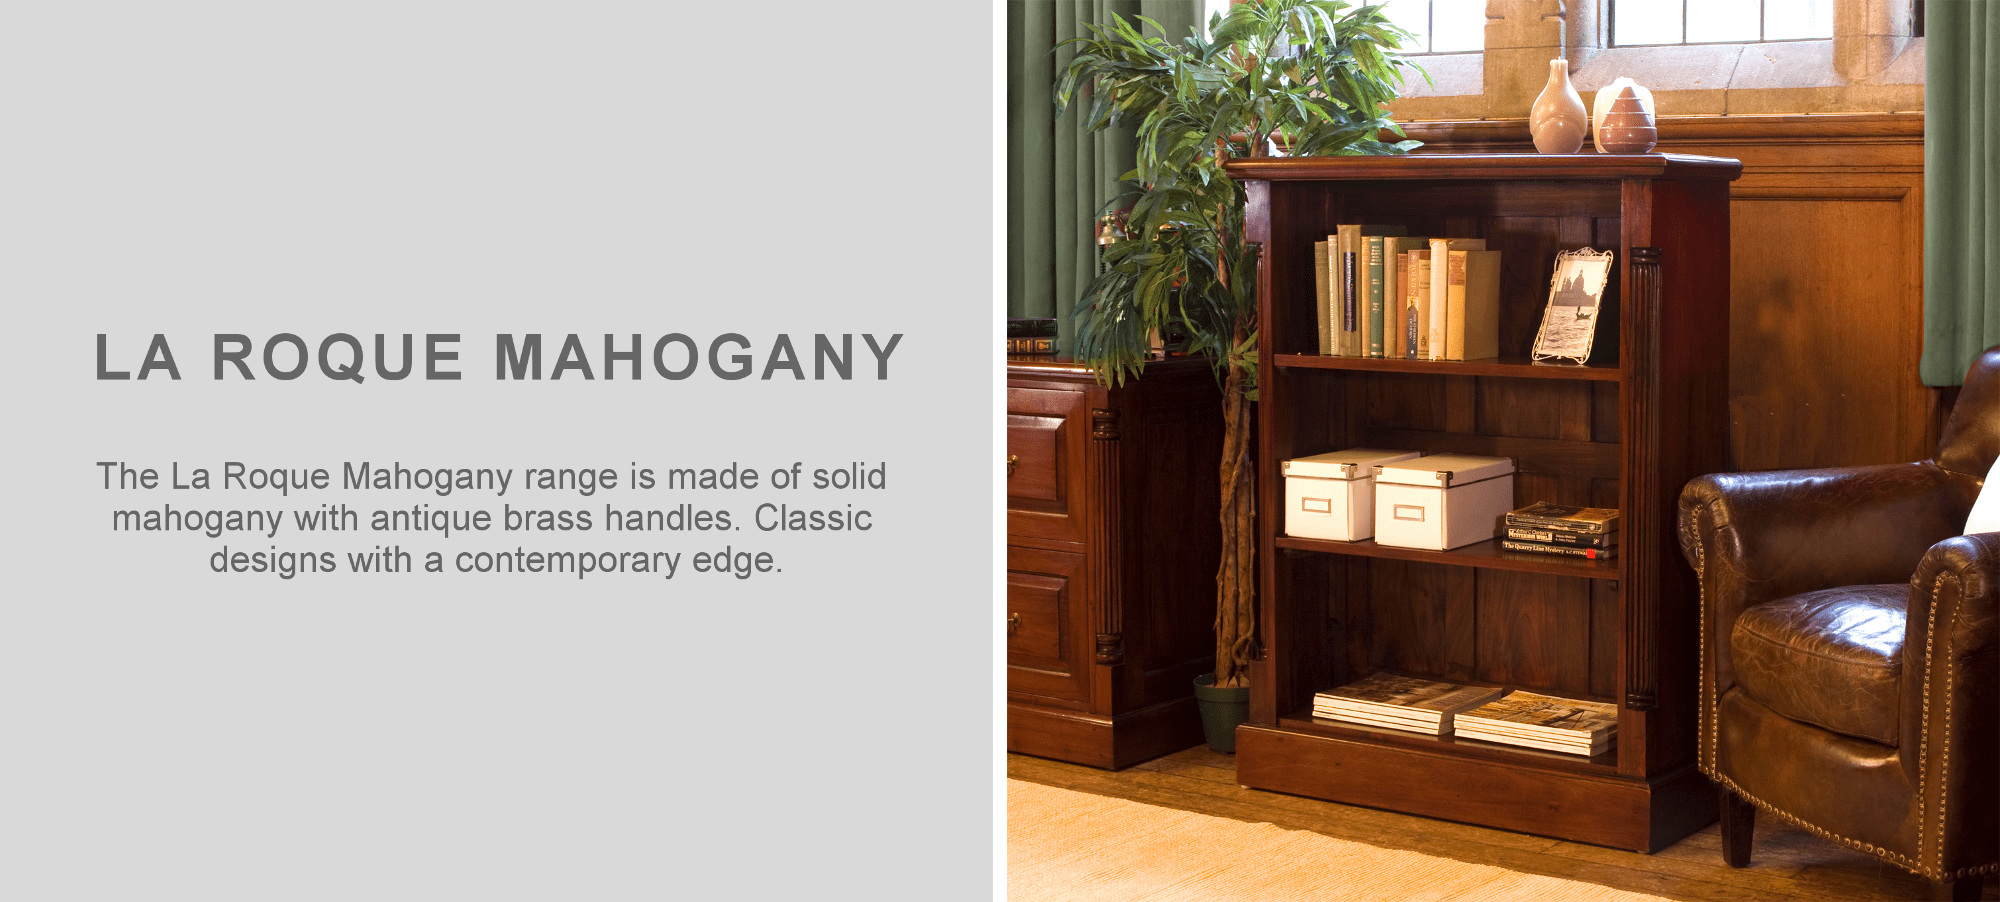 La roque mahogany bookcase furniture in living room